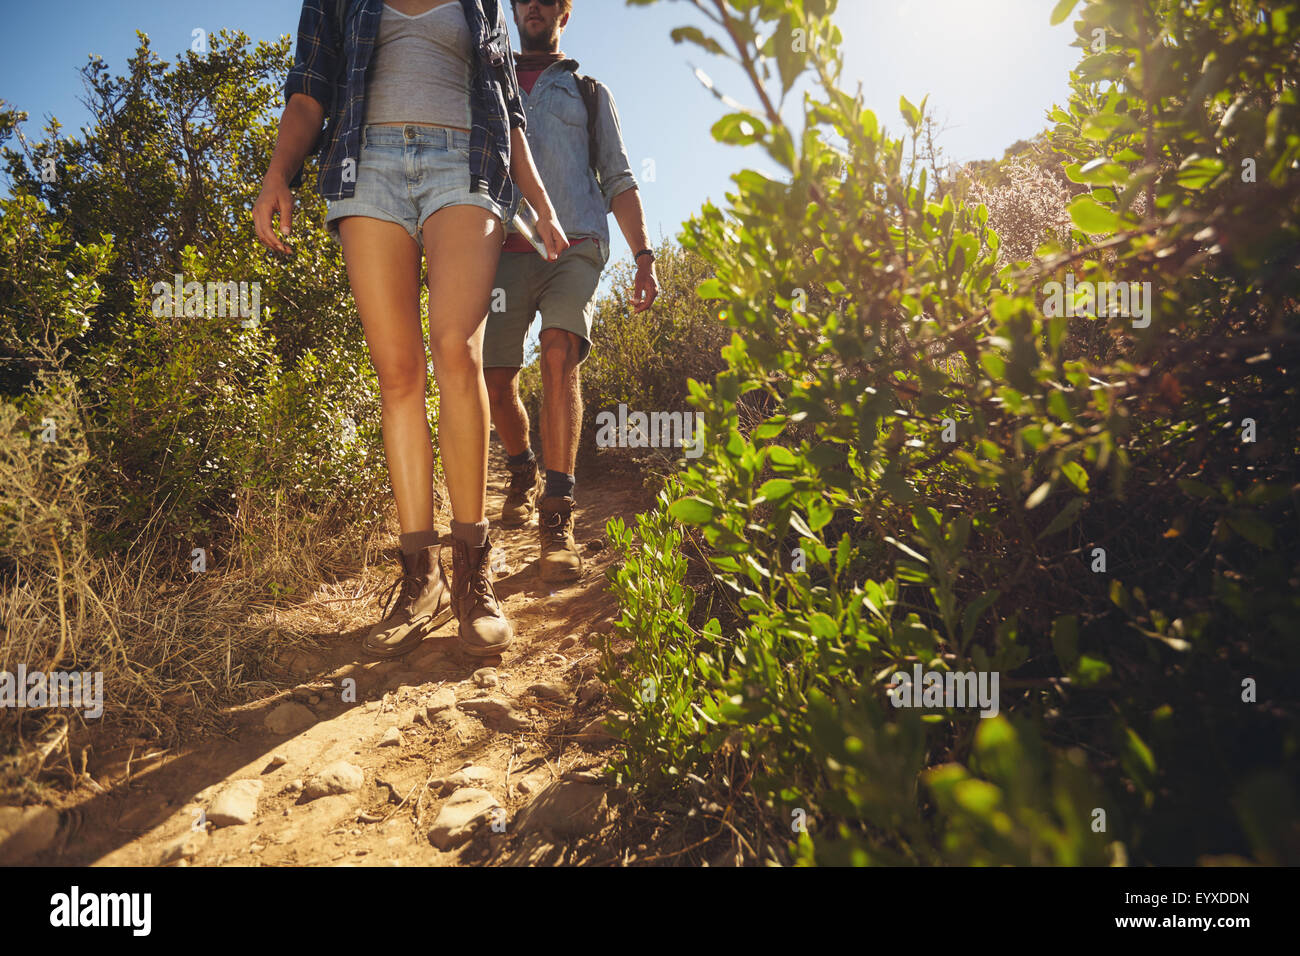 Hikers walking through country trail. Two young people hiking on mountains on sunny day. Cropped shot focus on legs. - Stock Image